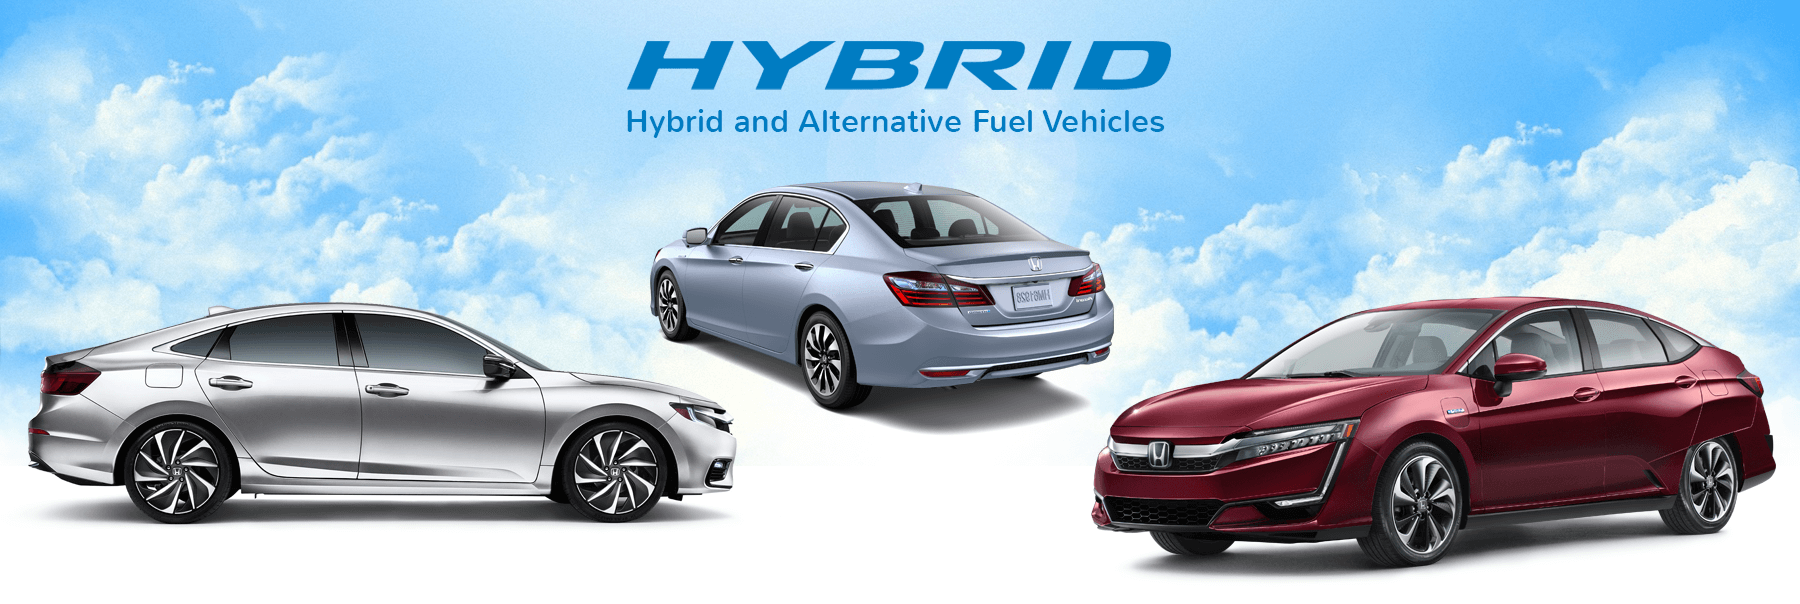 Hybrids & Electric Cars | Alternative Fuel Vehicles | Capital Region ...